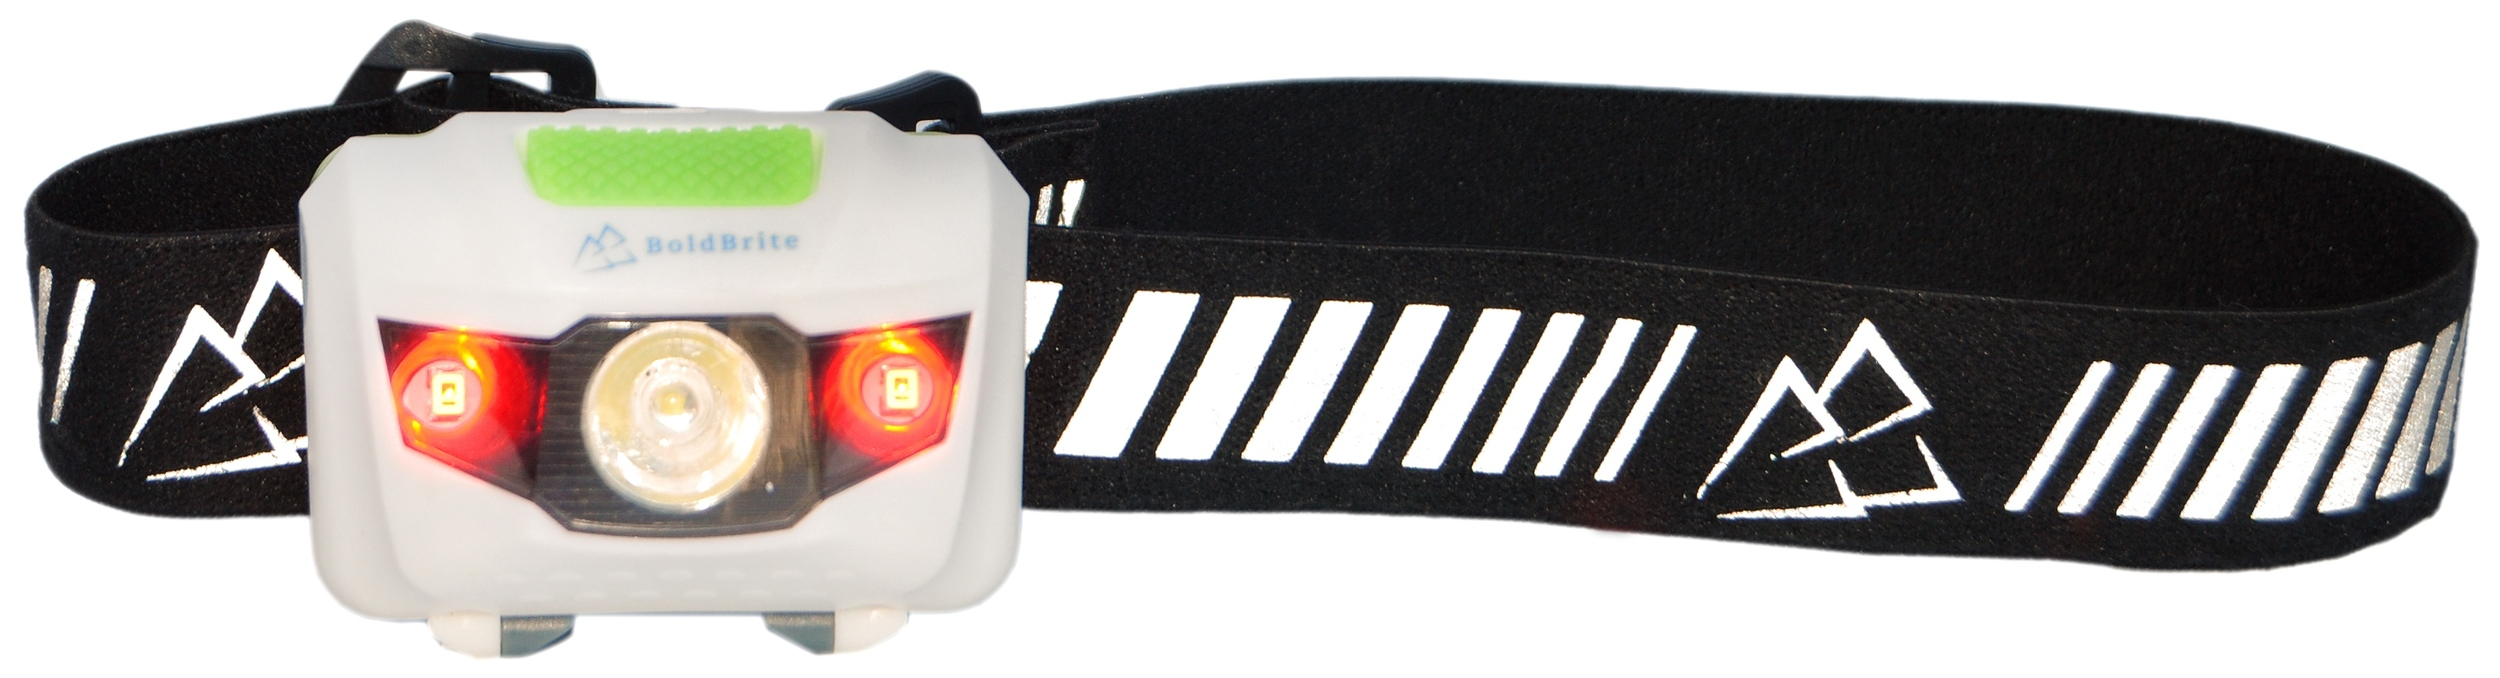 Headlamp2 - band reflective.jpg